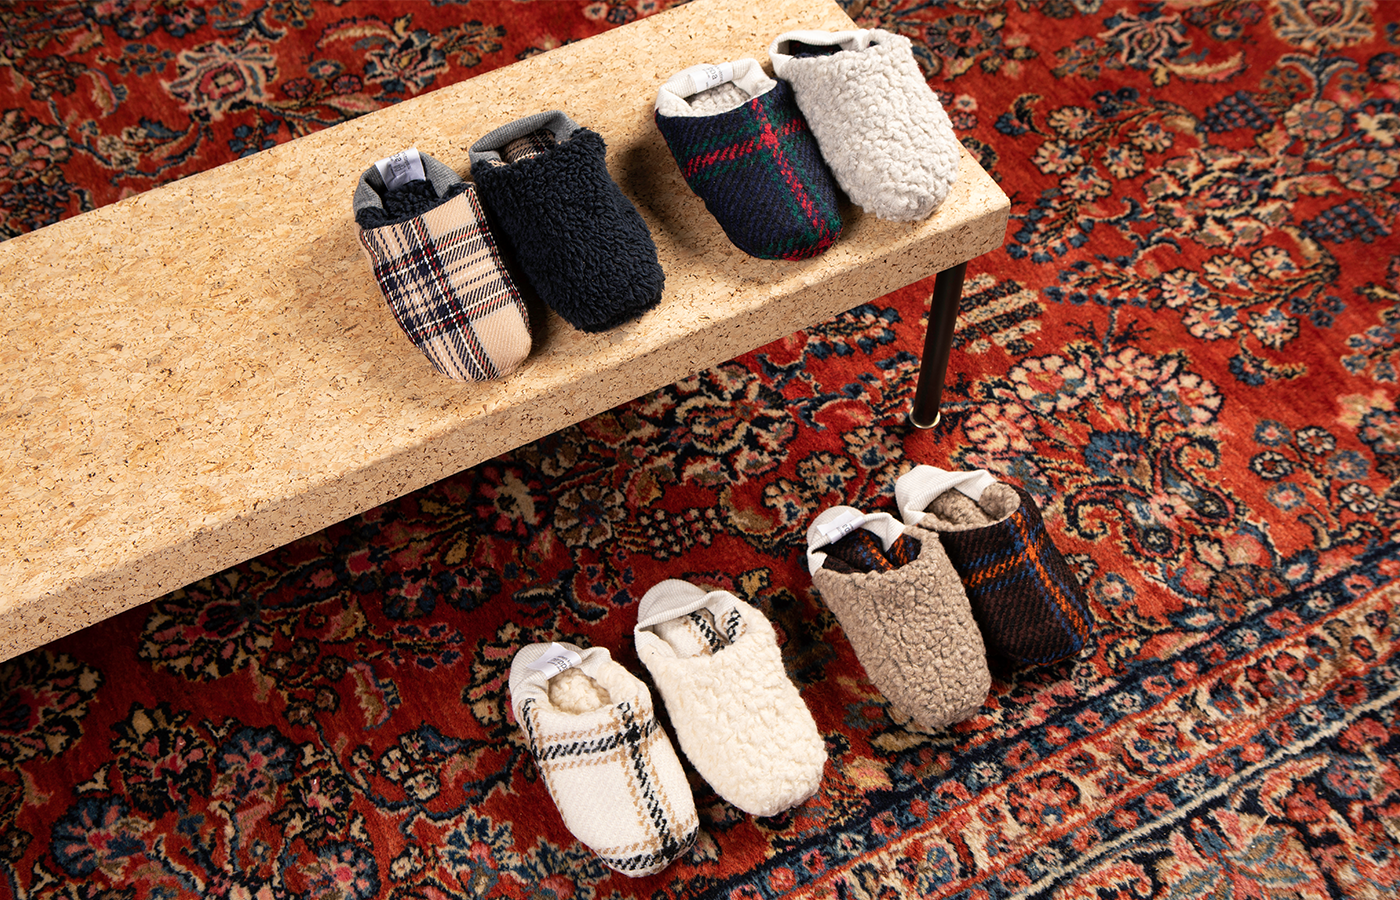 Photo 1 of 3 in Topdrawer Cultivates Creativity and Coziness With Their Heirloom-Quality Tools for Nomads